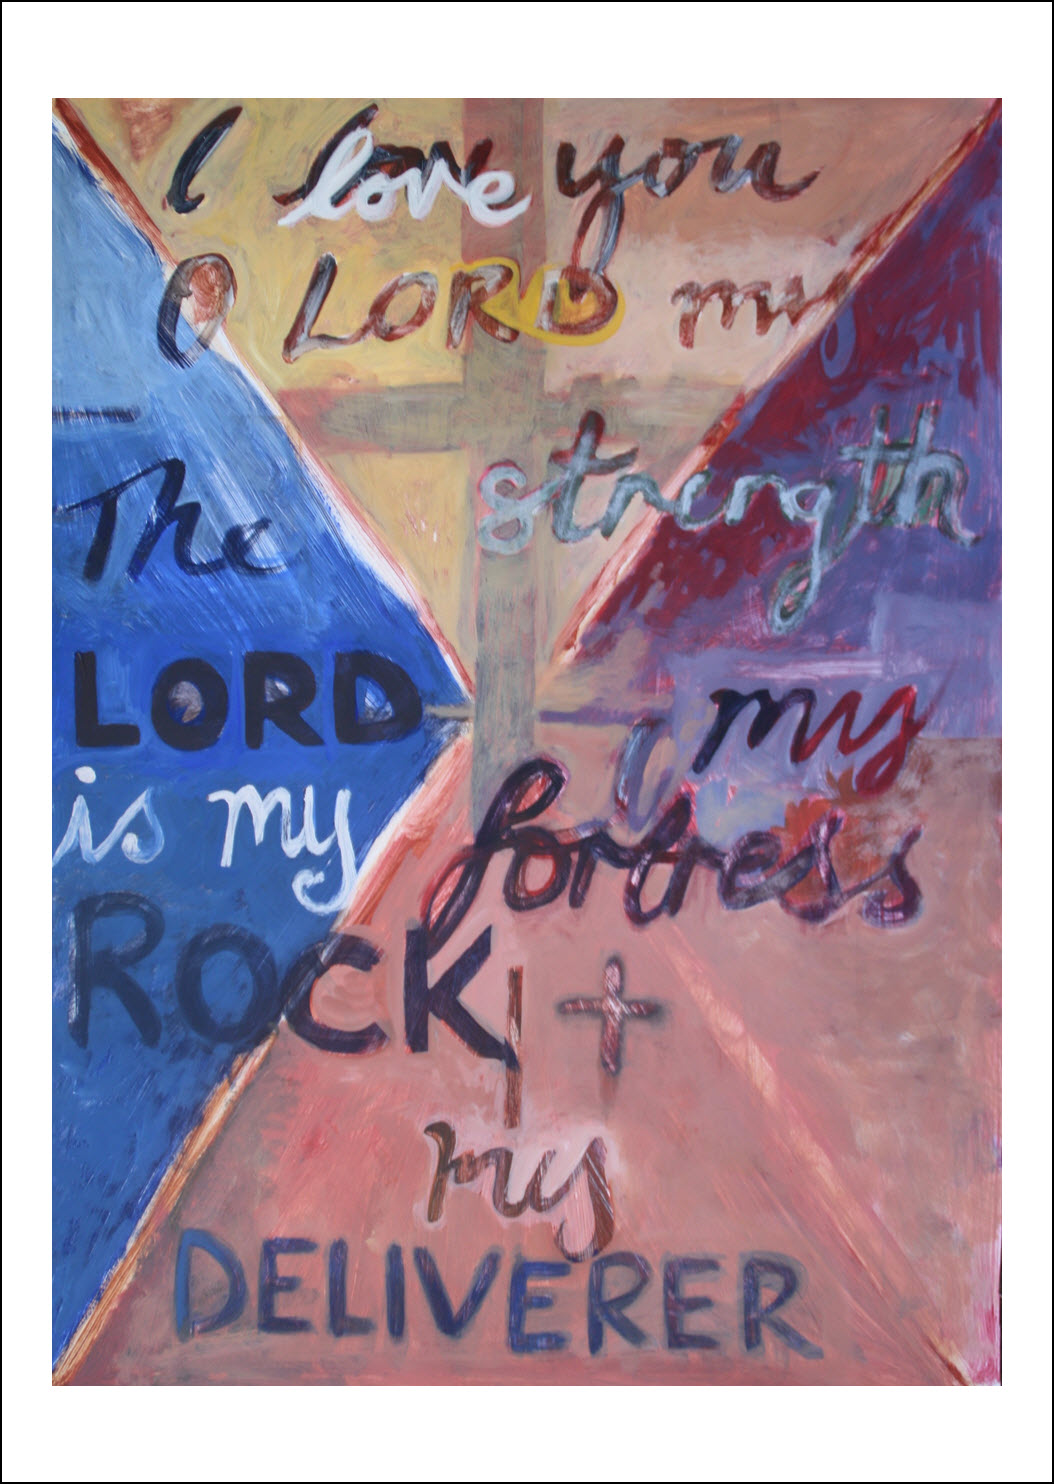 36.Painted Verses: Psalm 18:2New International Version (NIV)  The Lord is my rock, my fortress and my deliverer; my God is my rock, in whom I take refuge, my shield and the horn of my salvation, my stronghold.